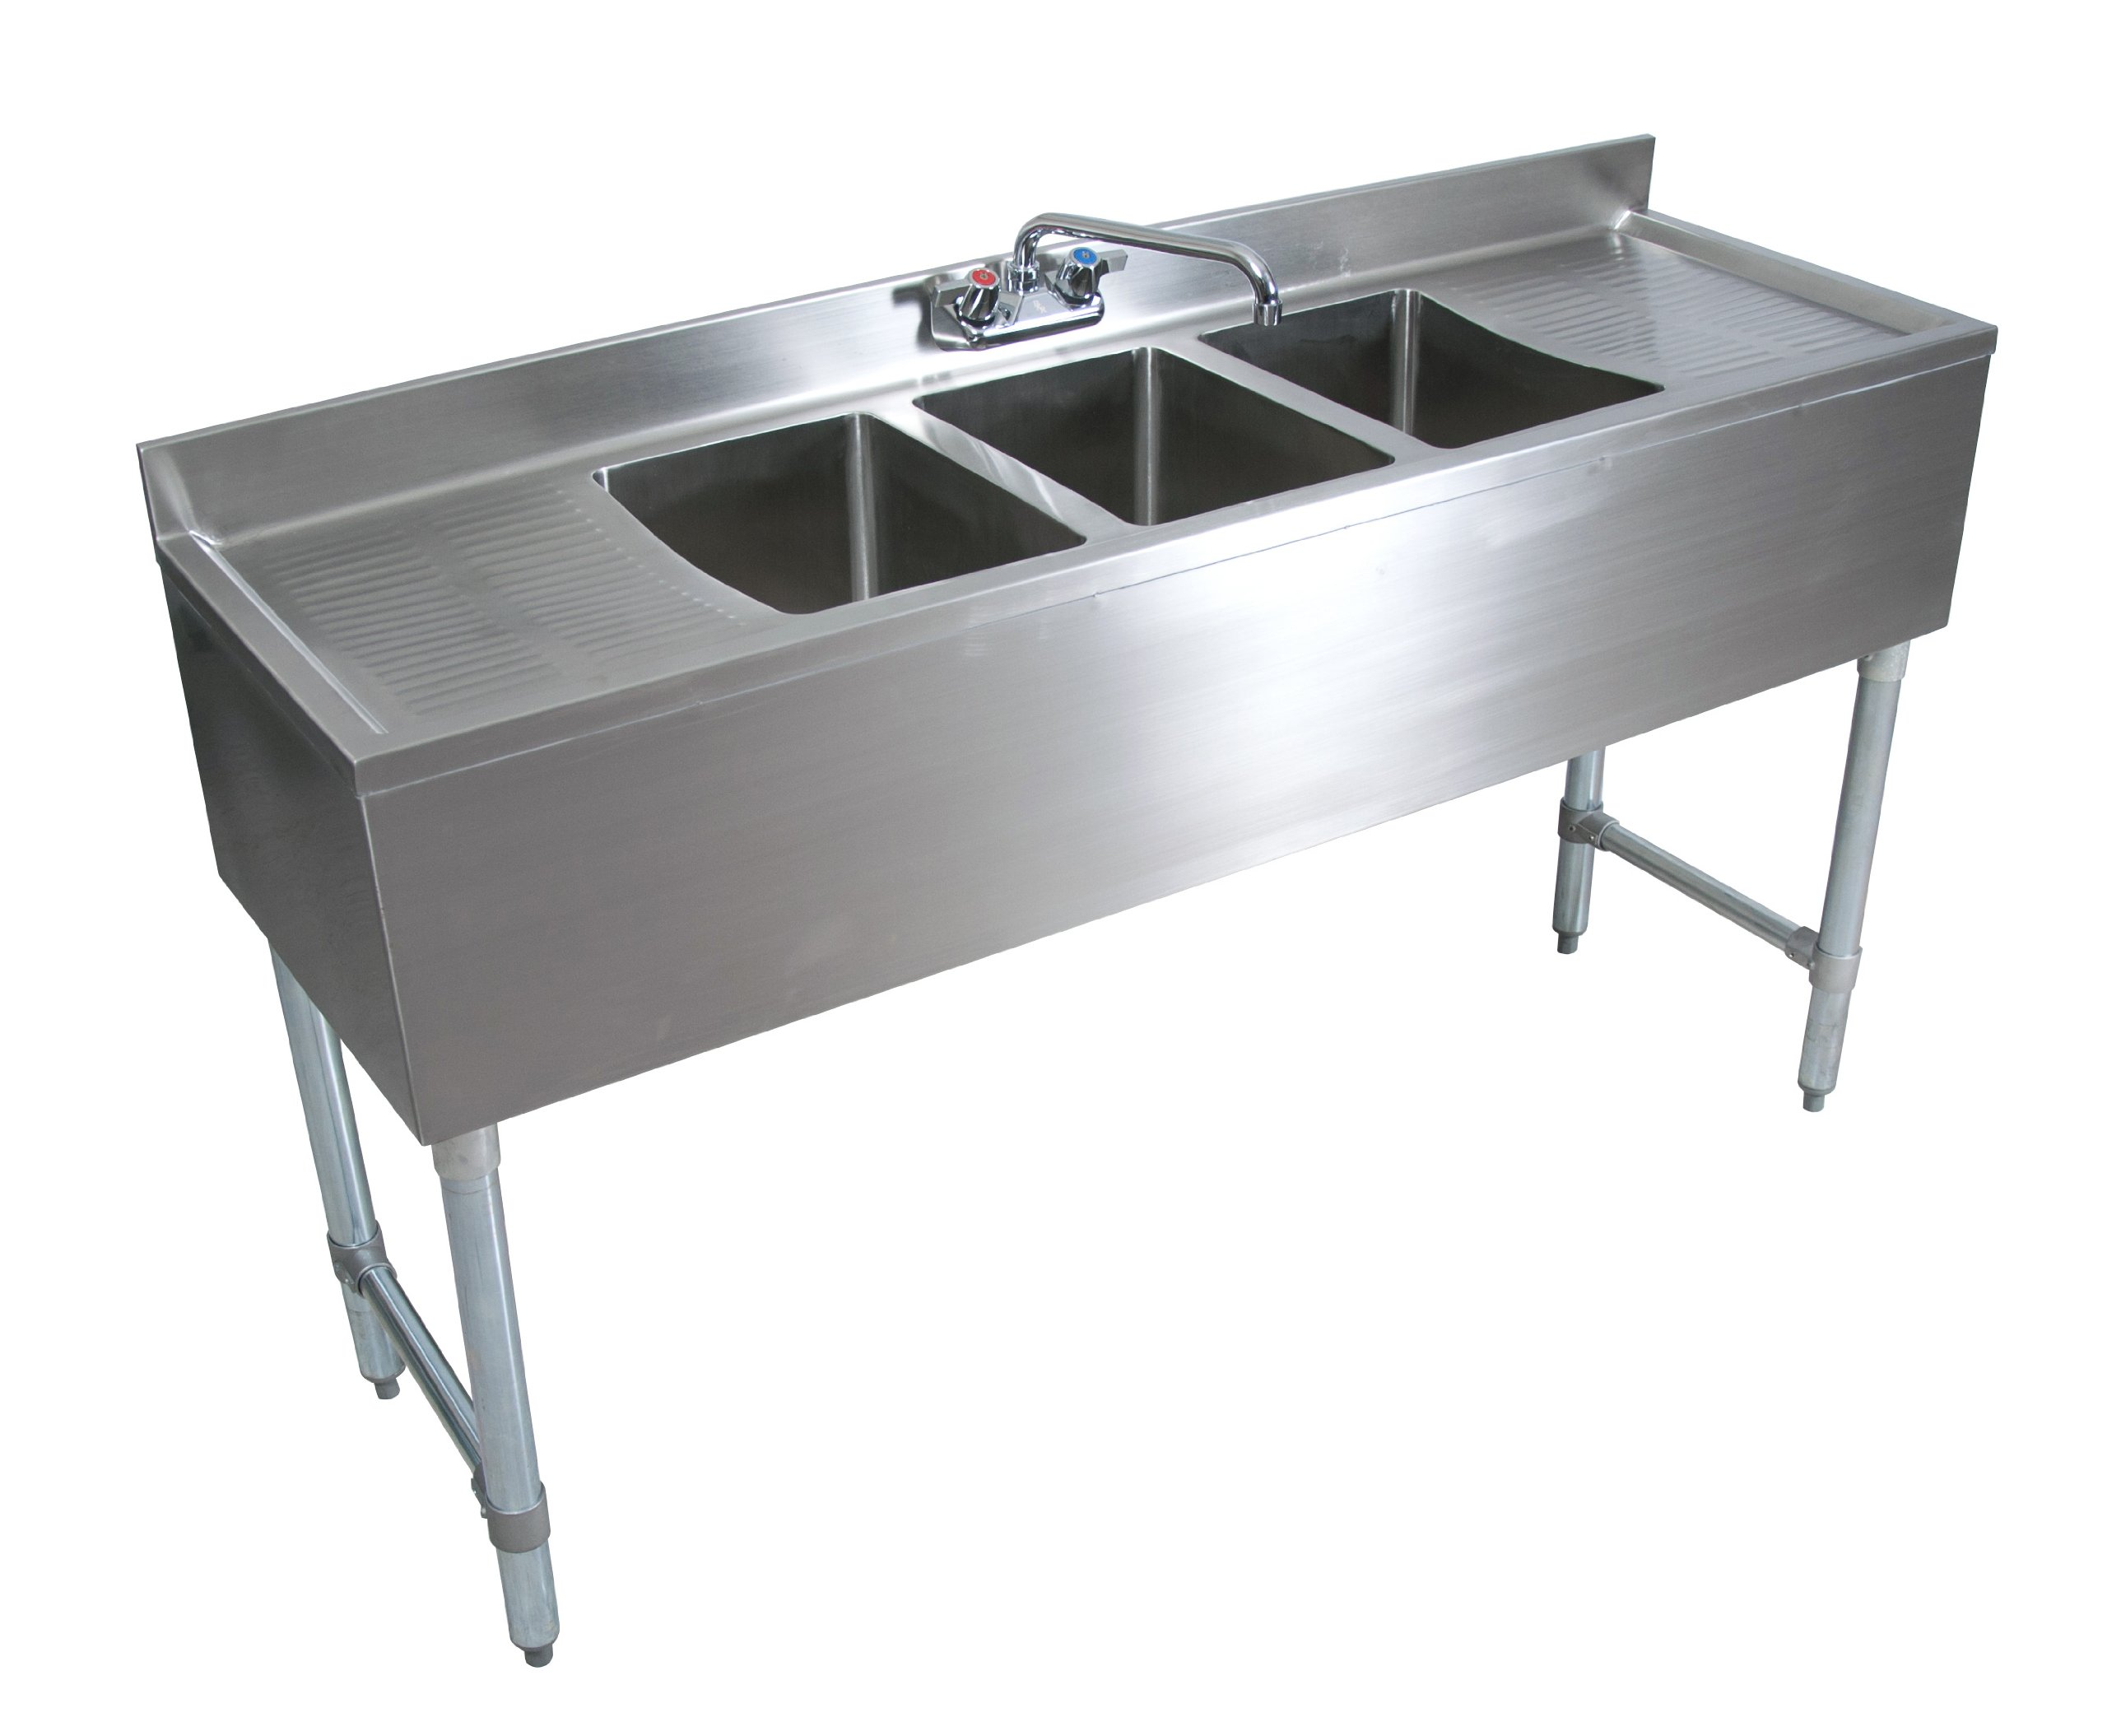 John Boos EUB3S60-2D Stainless Steel Underbar Sink, 3 Bowls, Left Hand and Right Hand Drain Boards, Splash Mount Faucet, 32.5'' Height x 21'' Width x 60'' Length